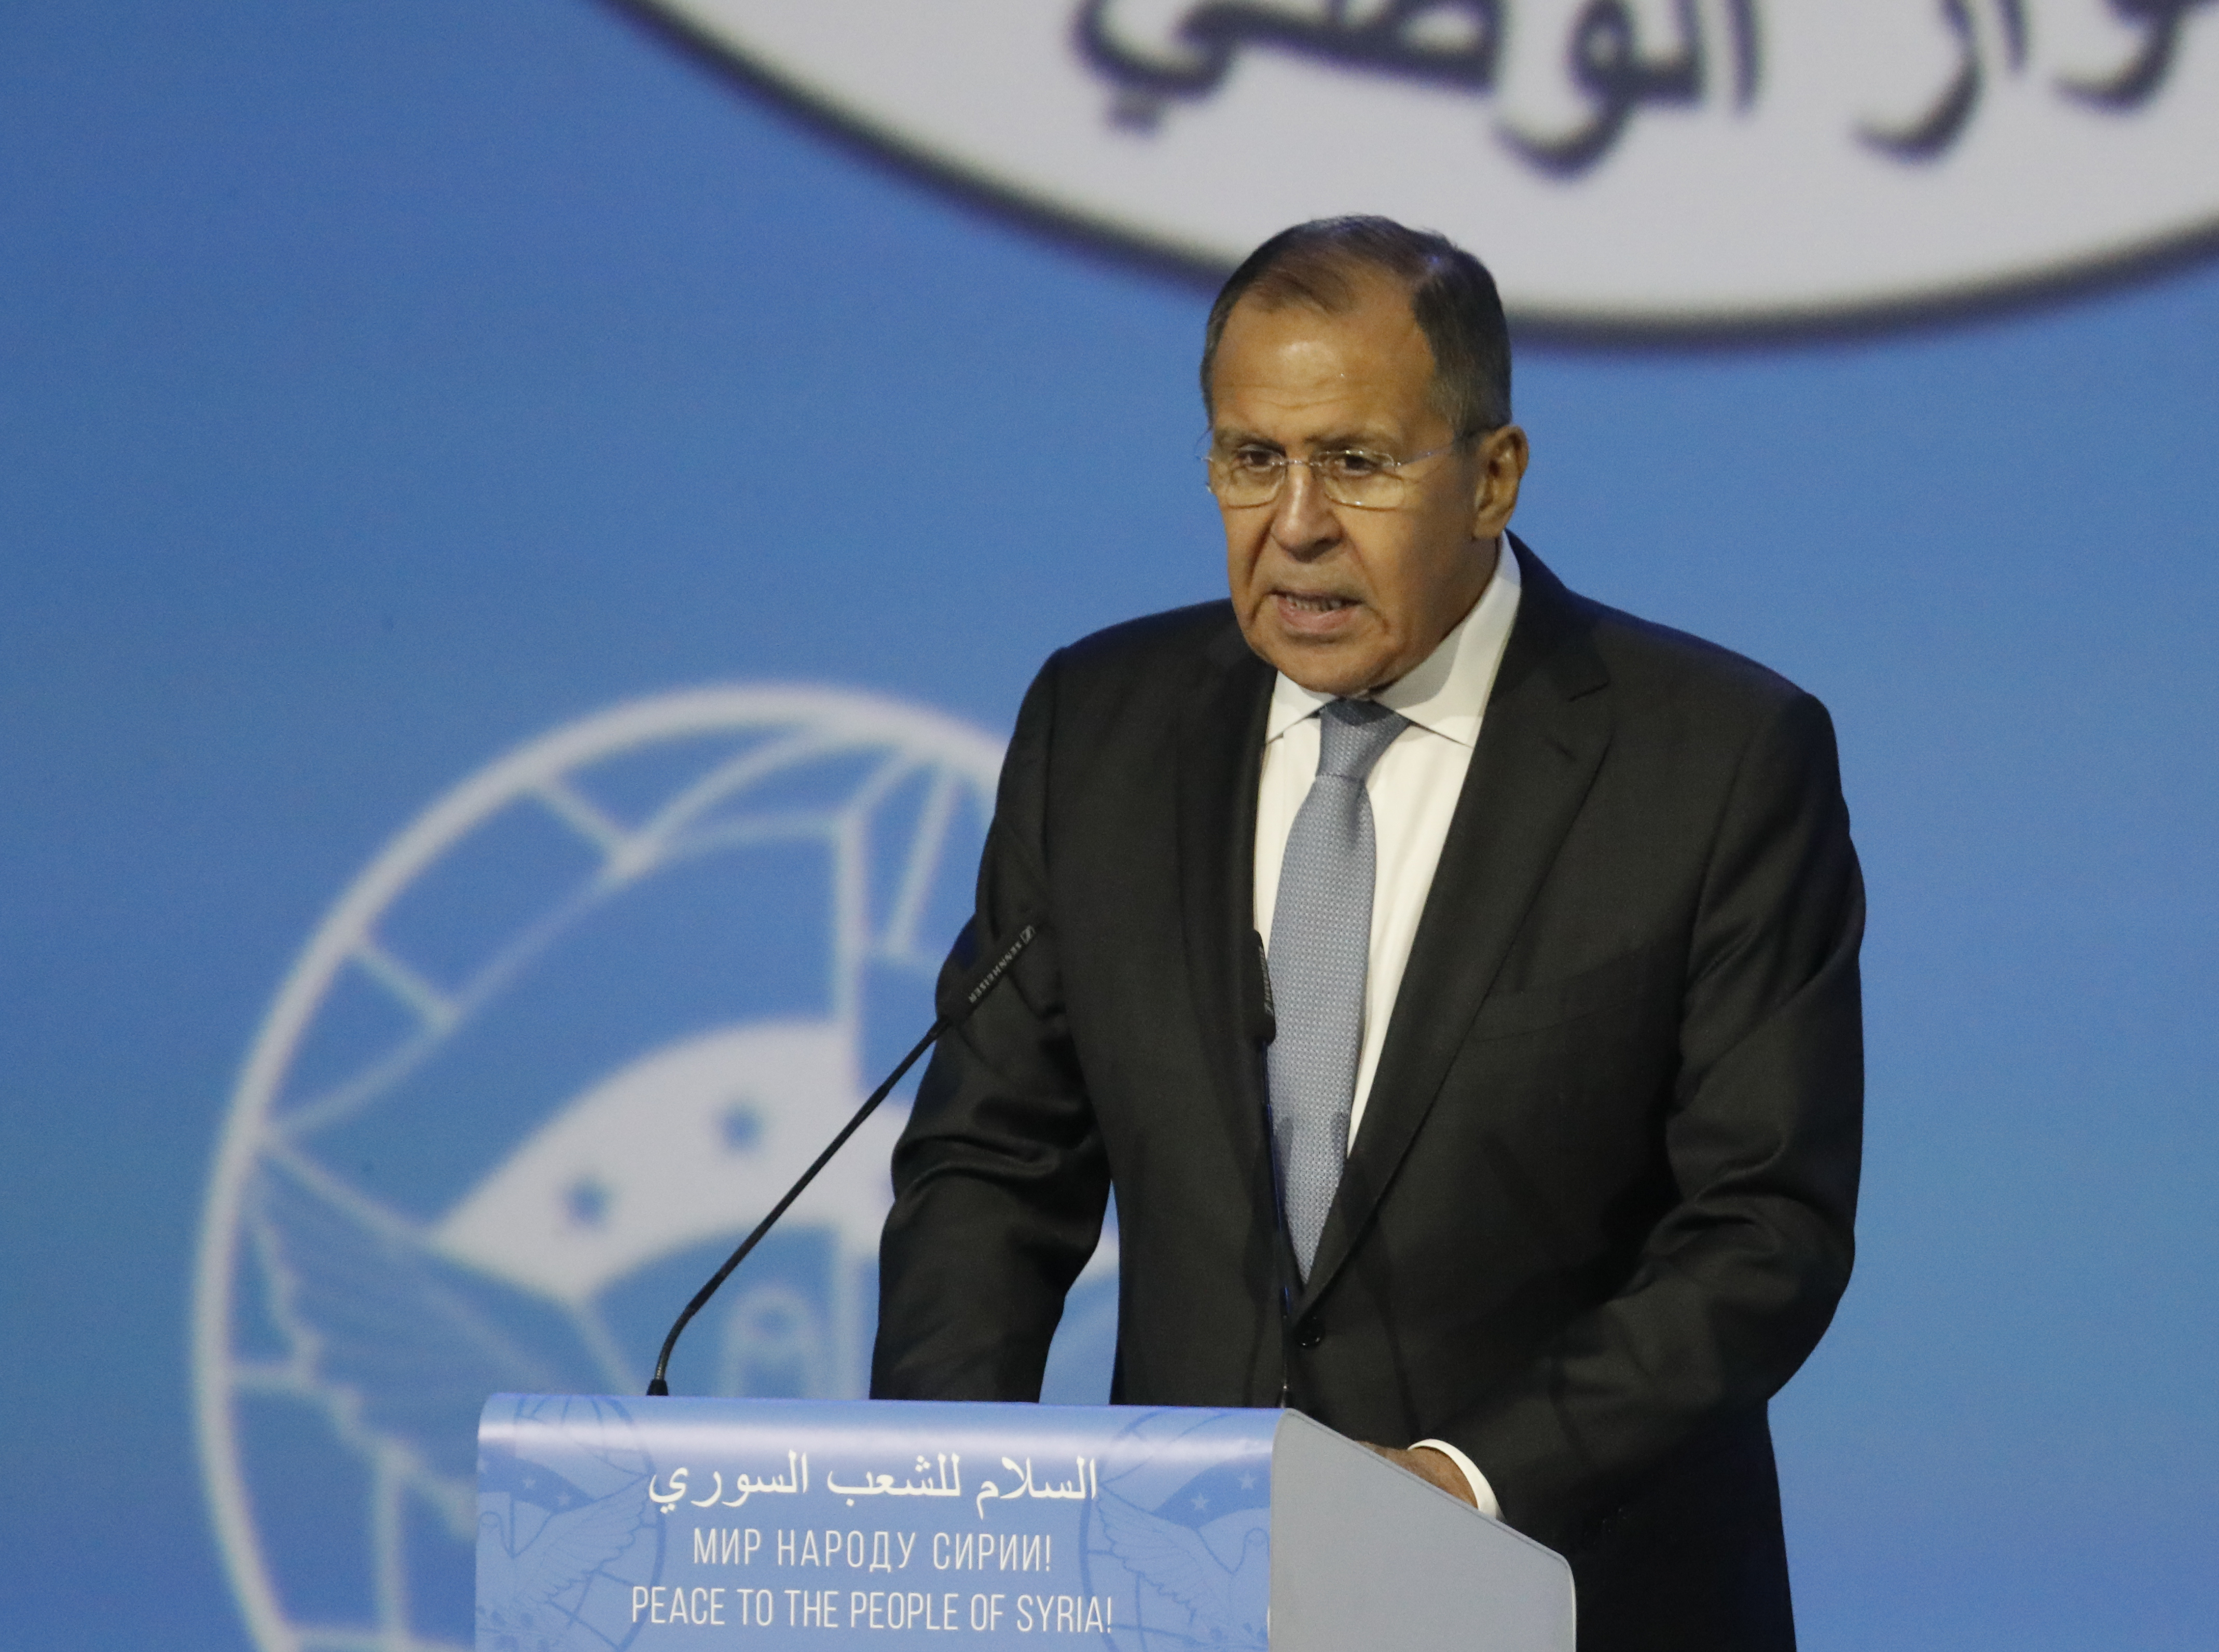 Russian Foreign Minister Sergei Lavrov delivers a speech during a session of the Syrian Congress of National Dialogue in the Black Sea resort of Sochi, Russia, Jan. 30, 2018.